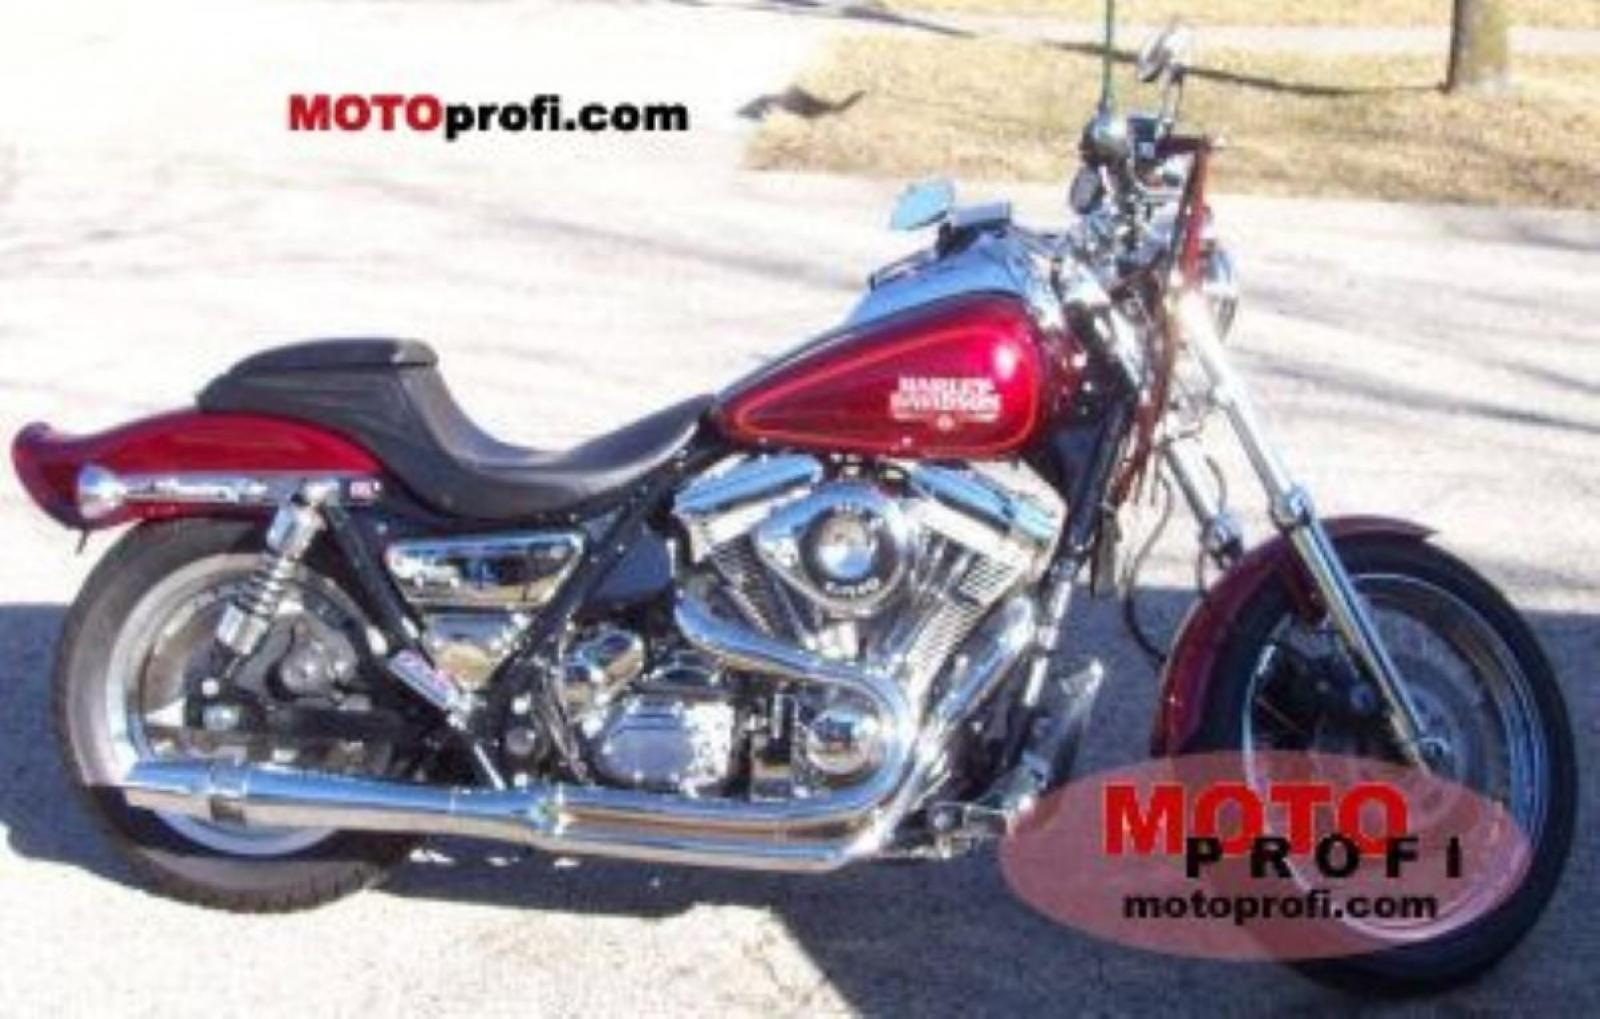 1990 Harley-Davidson FXRS 1340 Low Rider: pics, specs and